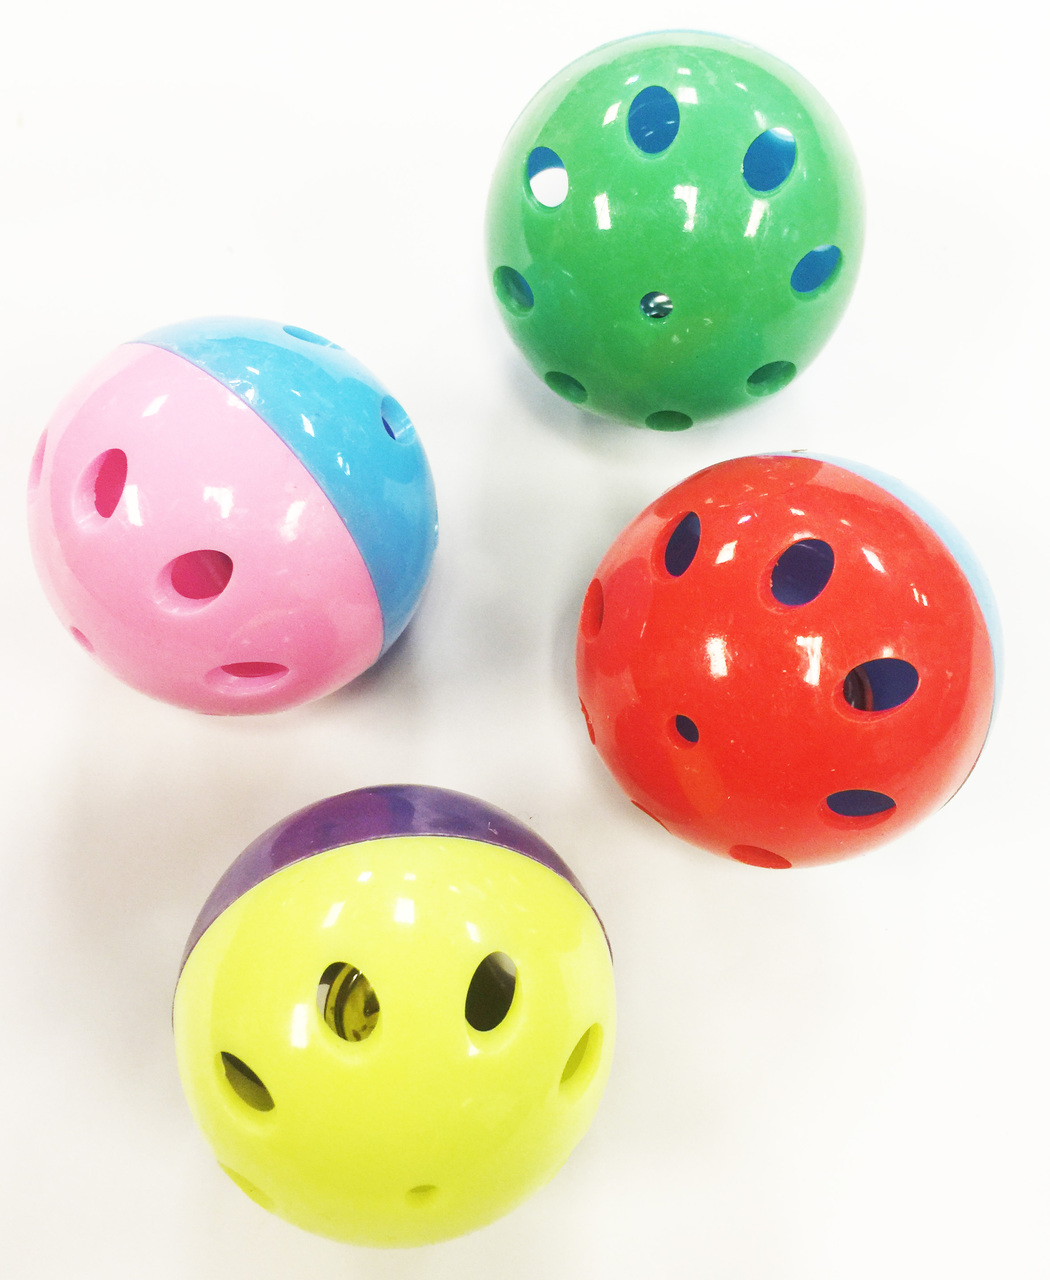 6 LUX BALL FOOT TOYS WITH BELL INSIDE.